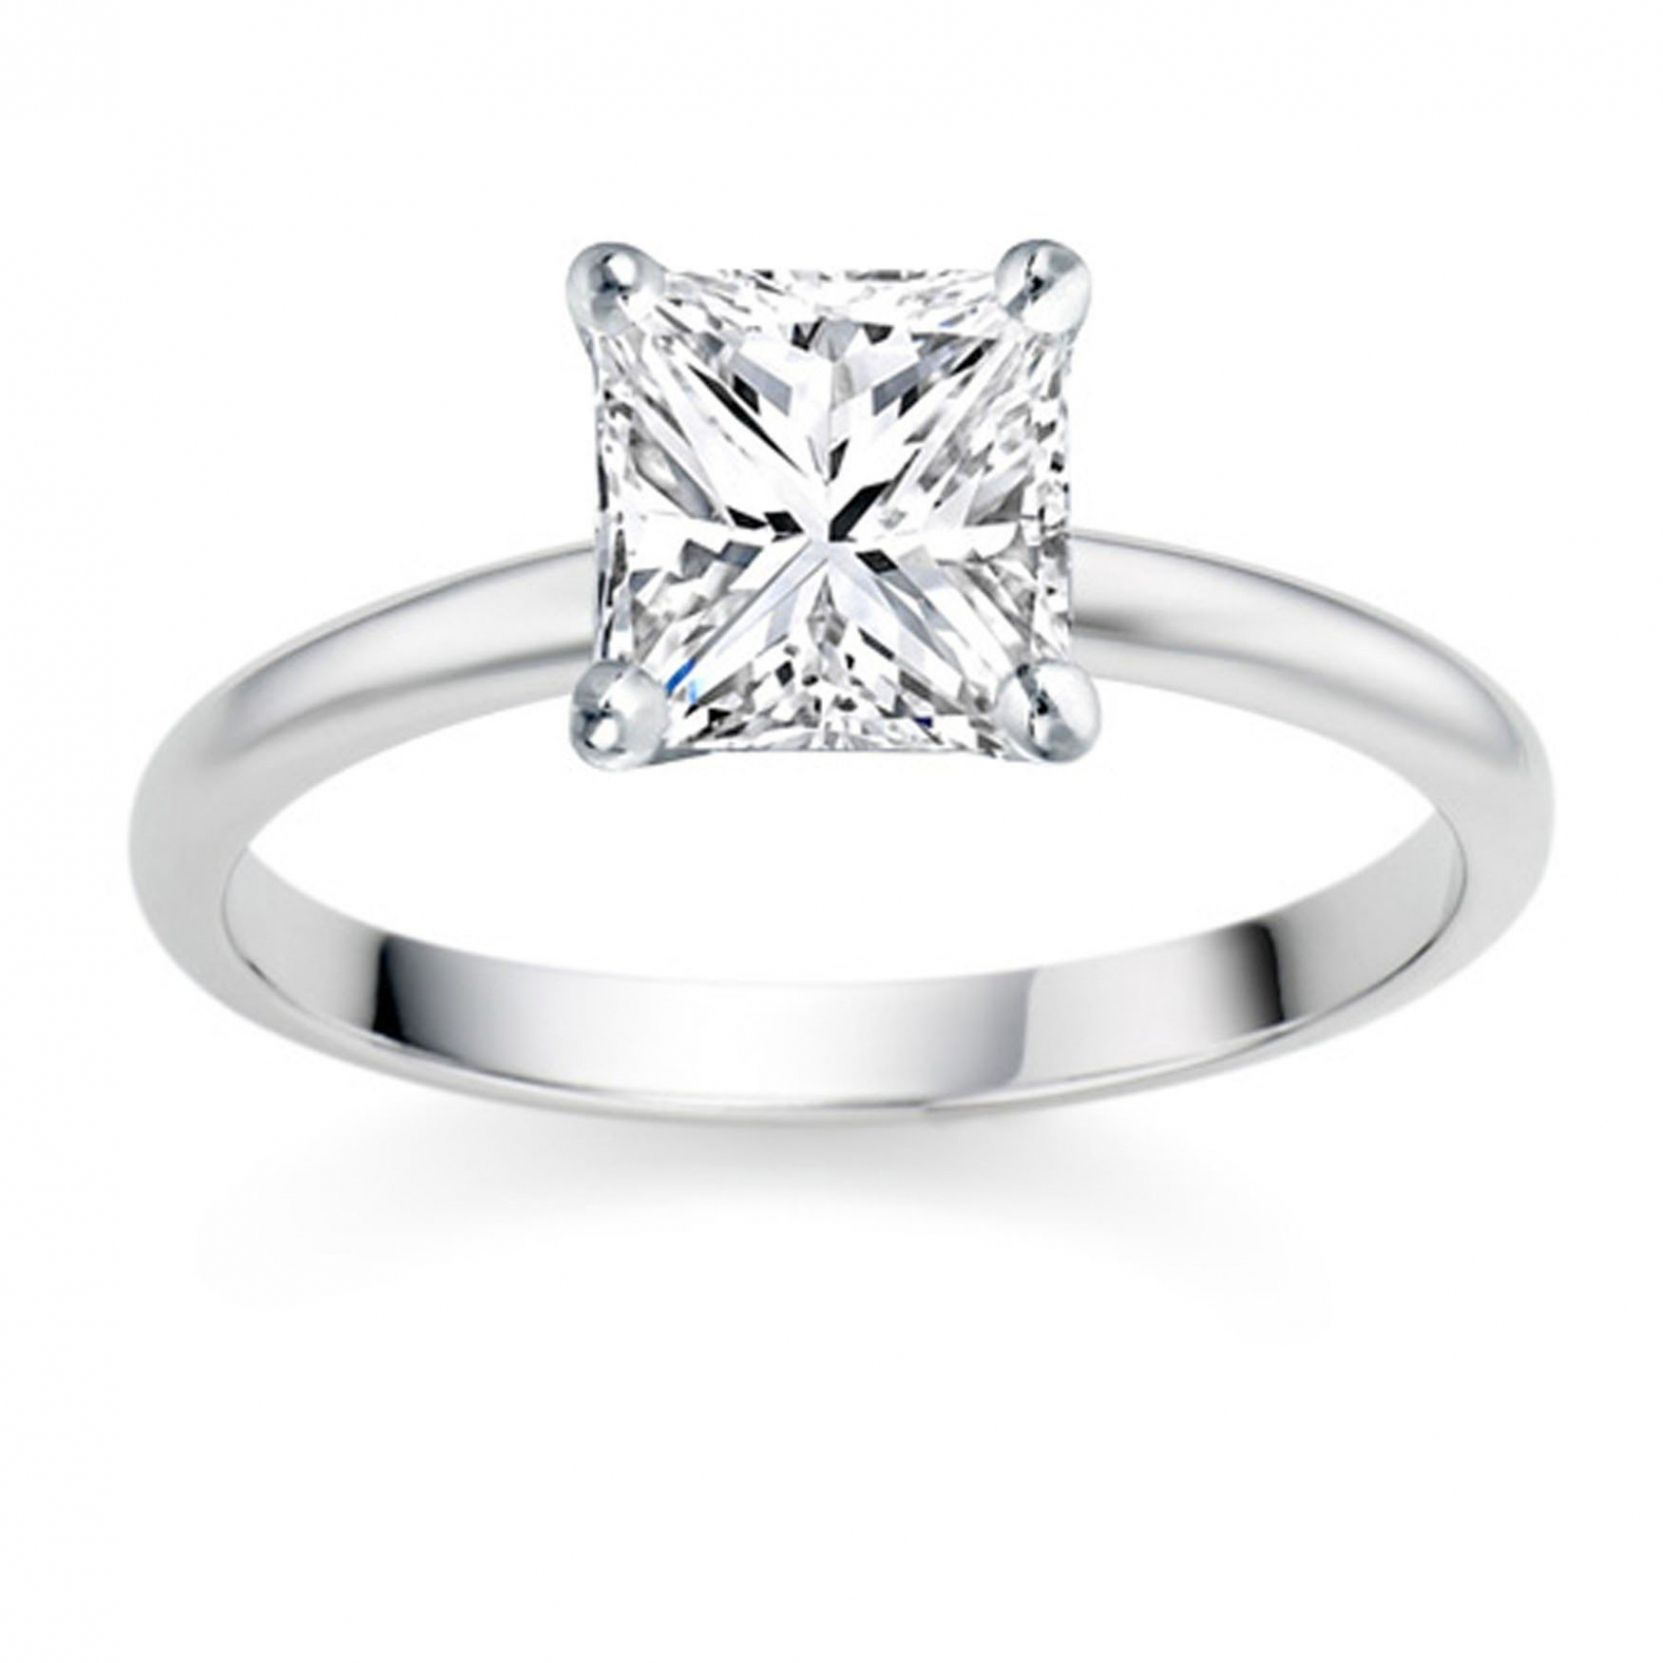 Buy wedding rings with bad credit